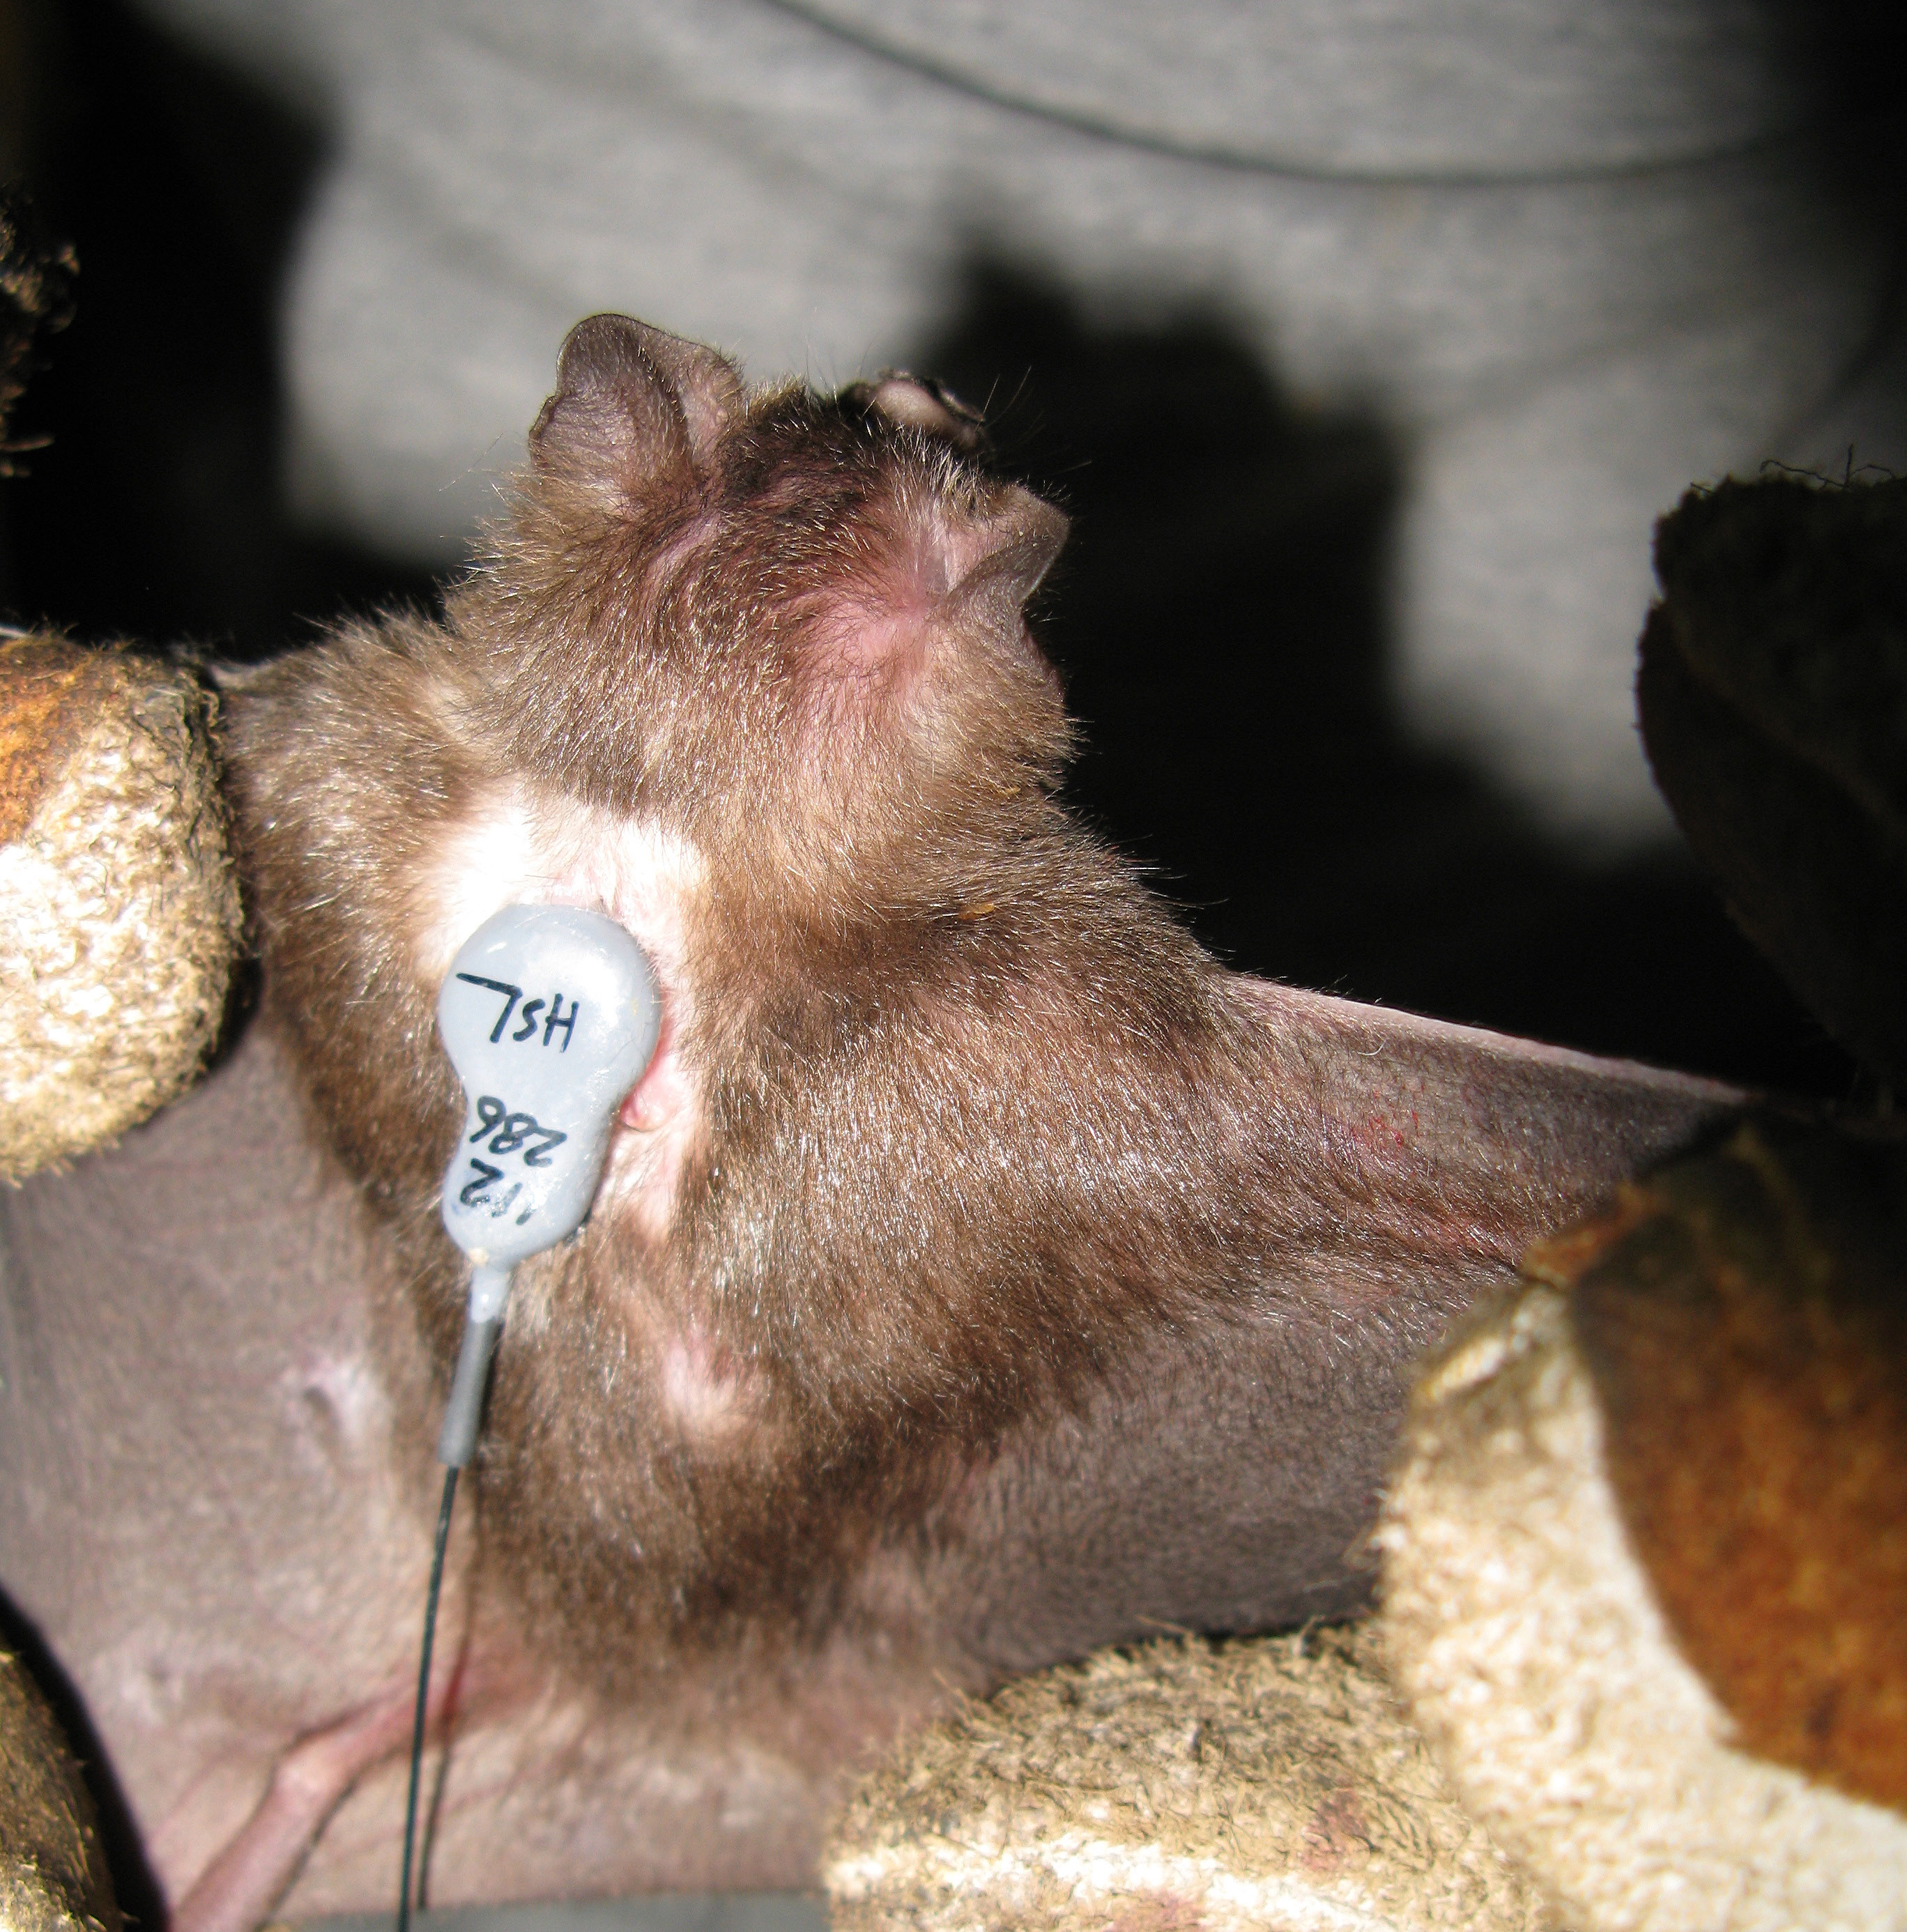 A vampire bat with a radio transmitter attached. The devices were used to track bats back to their roosts in the Amazon. Photo by Daniel Streicker